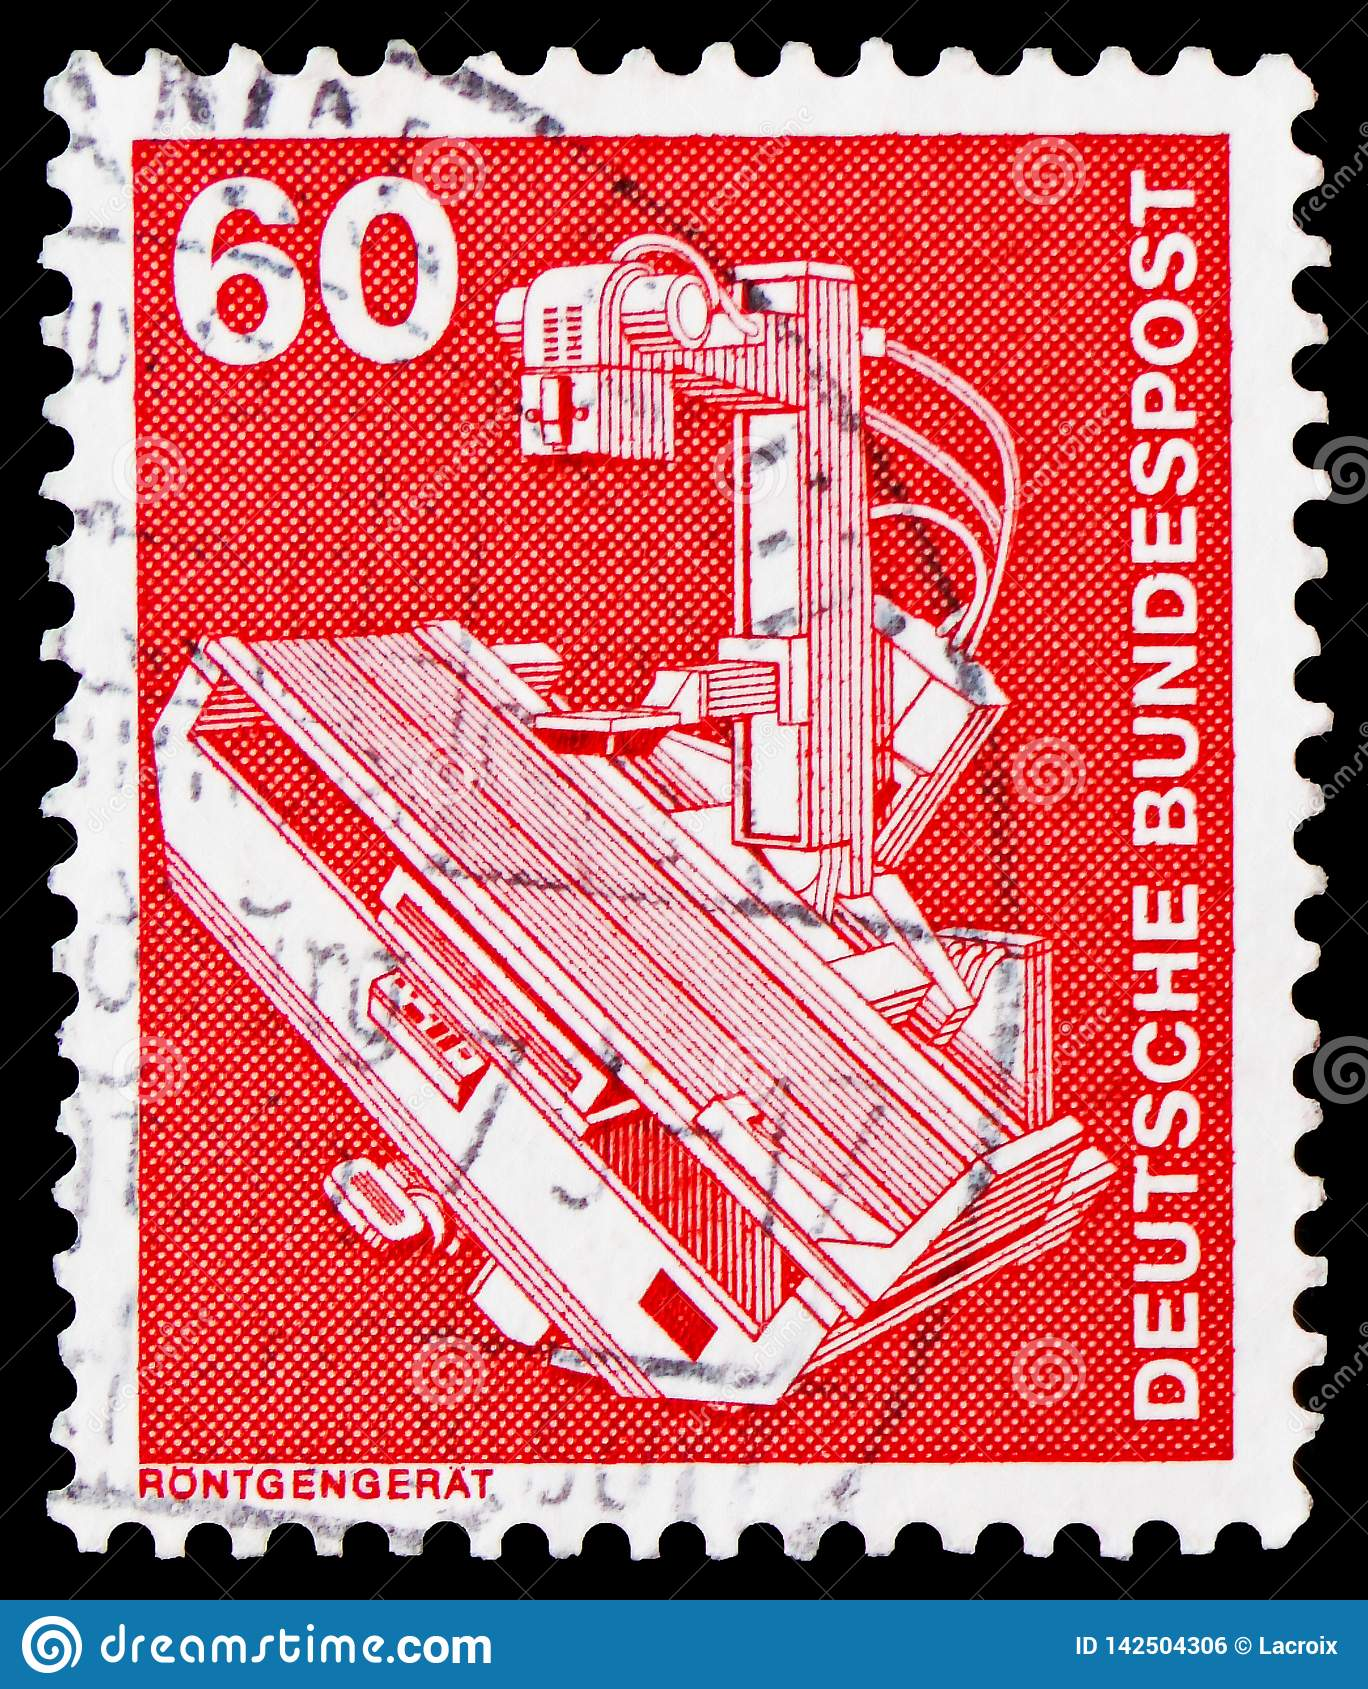 X-ray device, Industry and Technology Definitives 1975-1982 serie, circa 1978